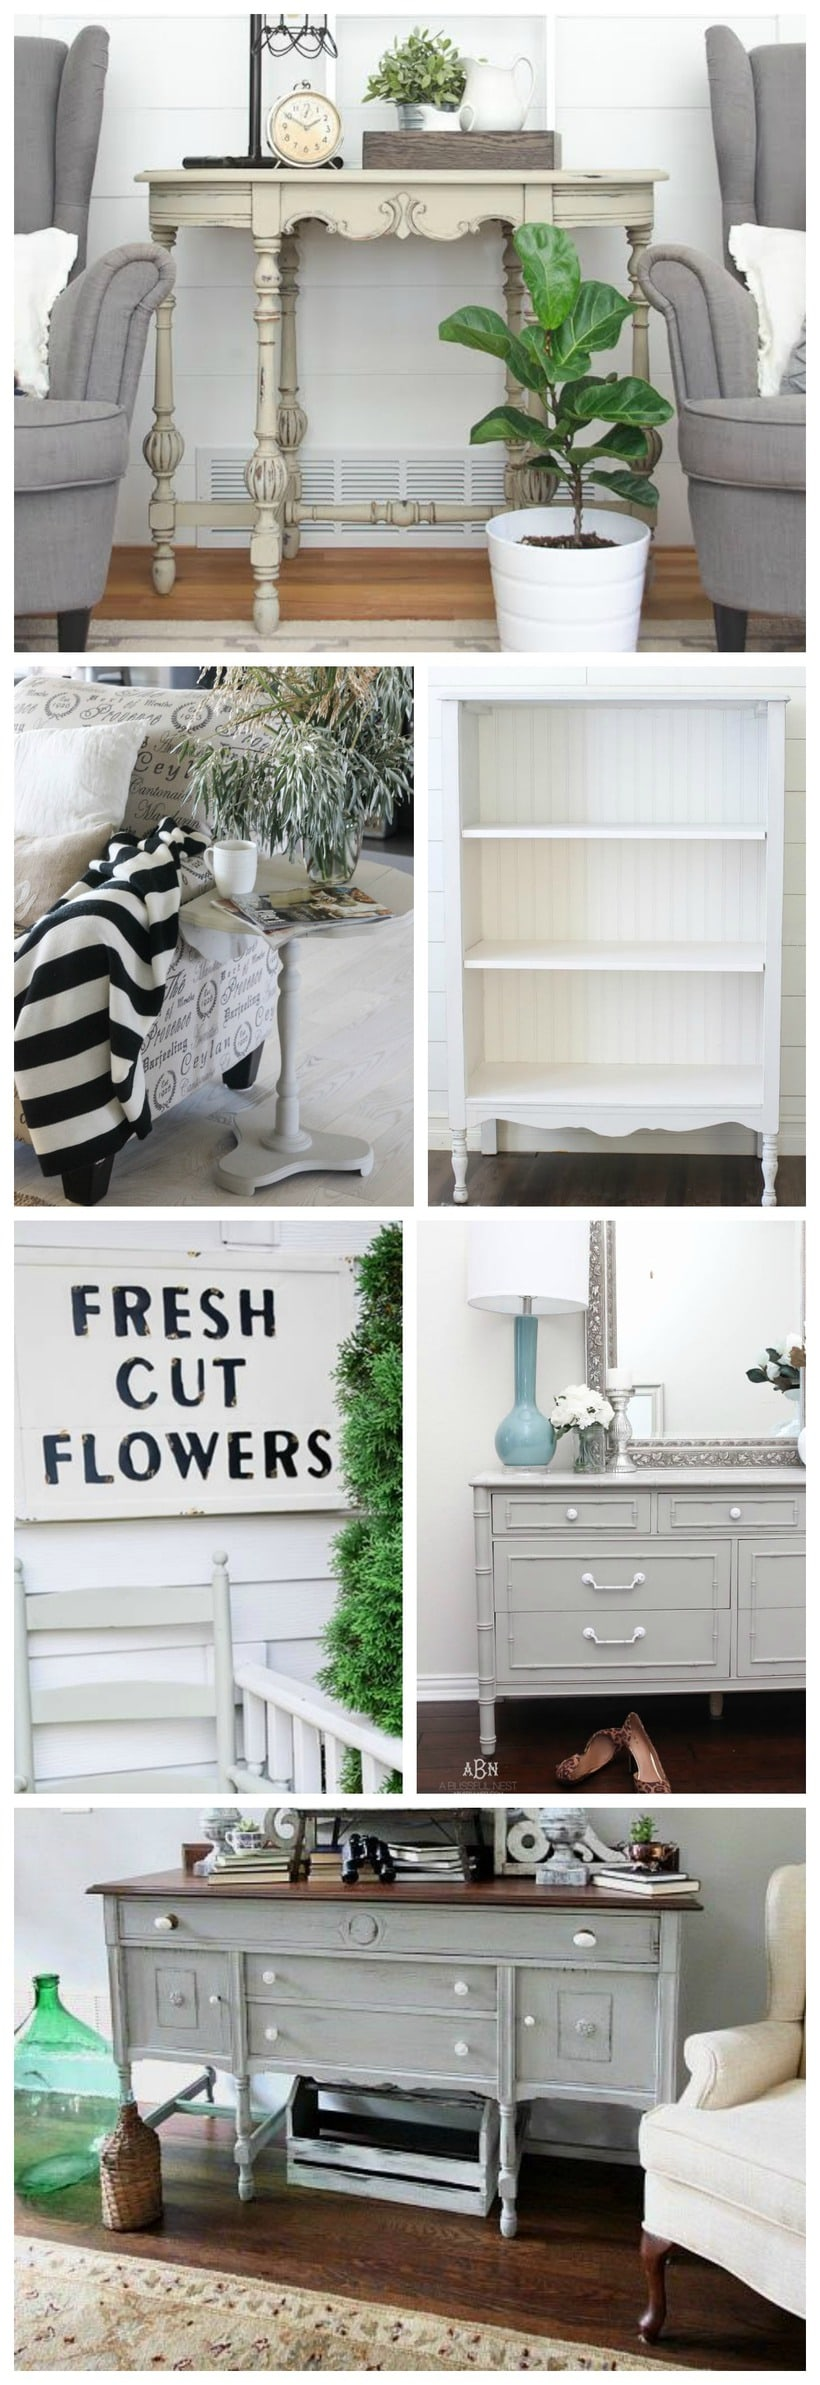 Chalk paint Farmhouse makeovers - Great inspiration for cottage & farmhouse decor